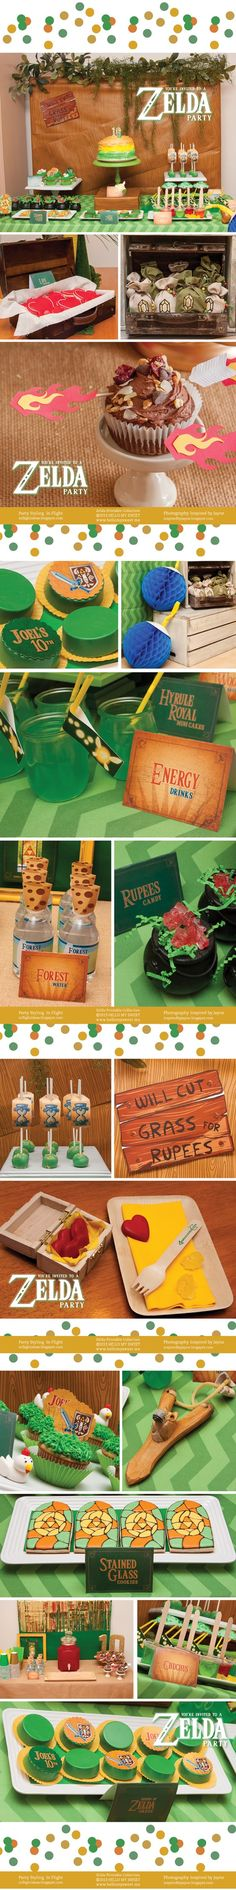 Legend of Zelda Party  In Flight Styled Zelda Birthday Party Hello My Sweet Printables Inspired by Jayne Photography #Knoxville